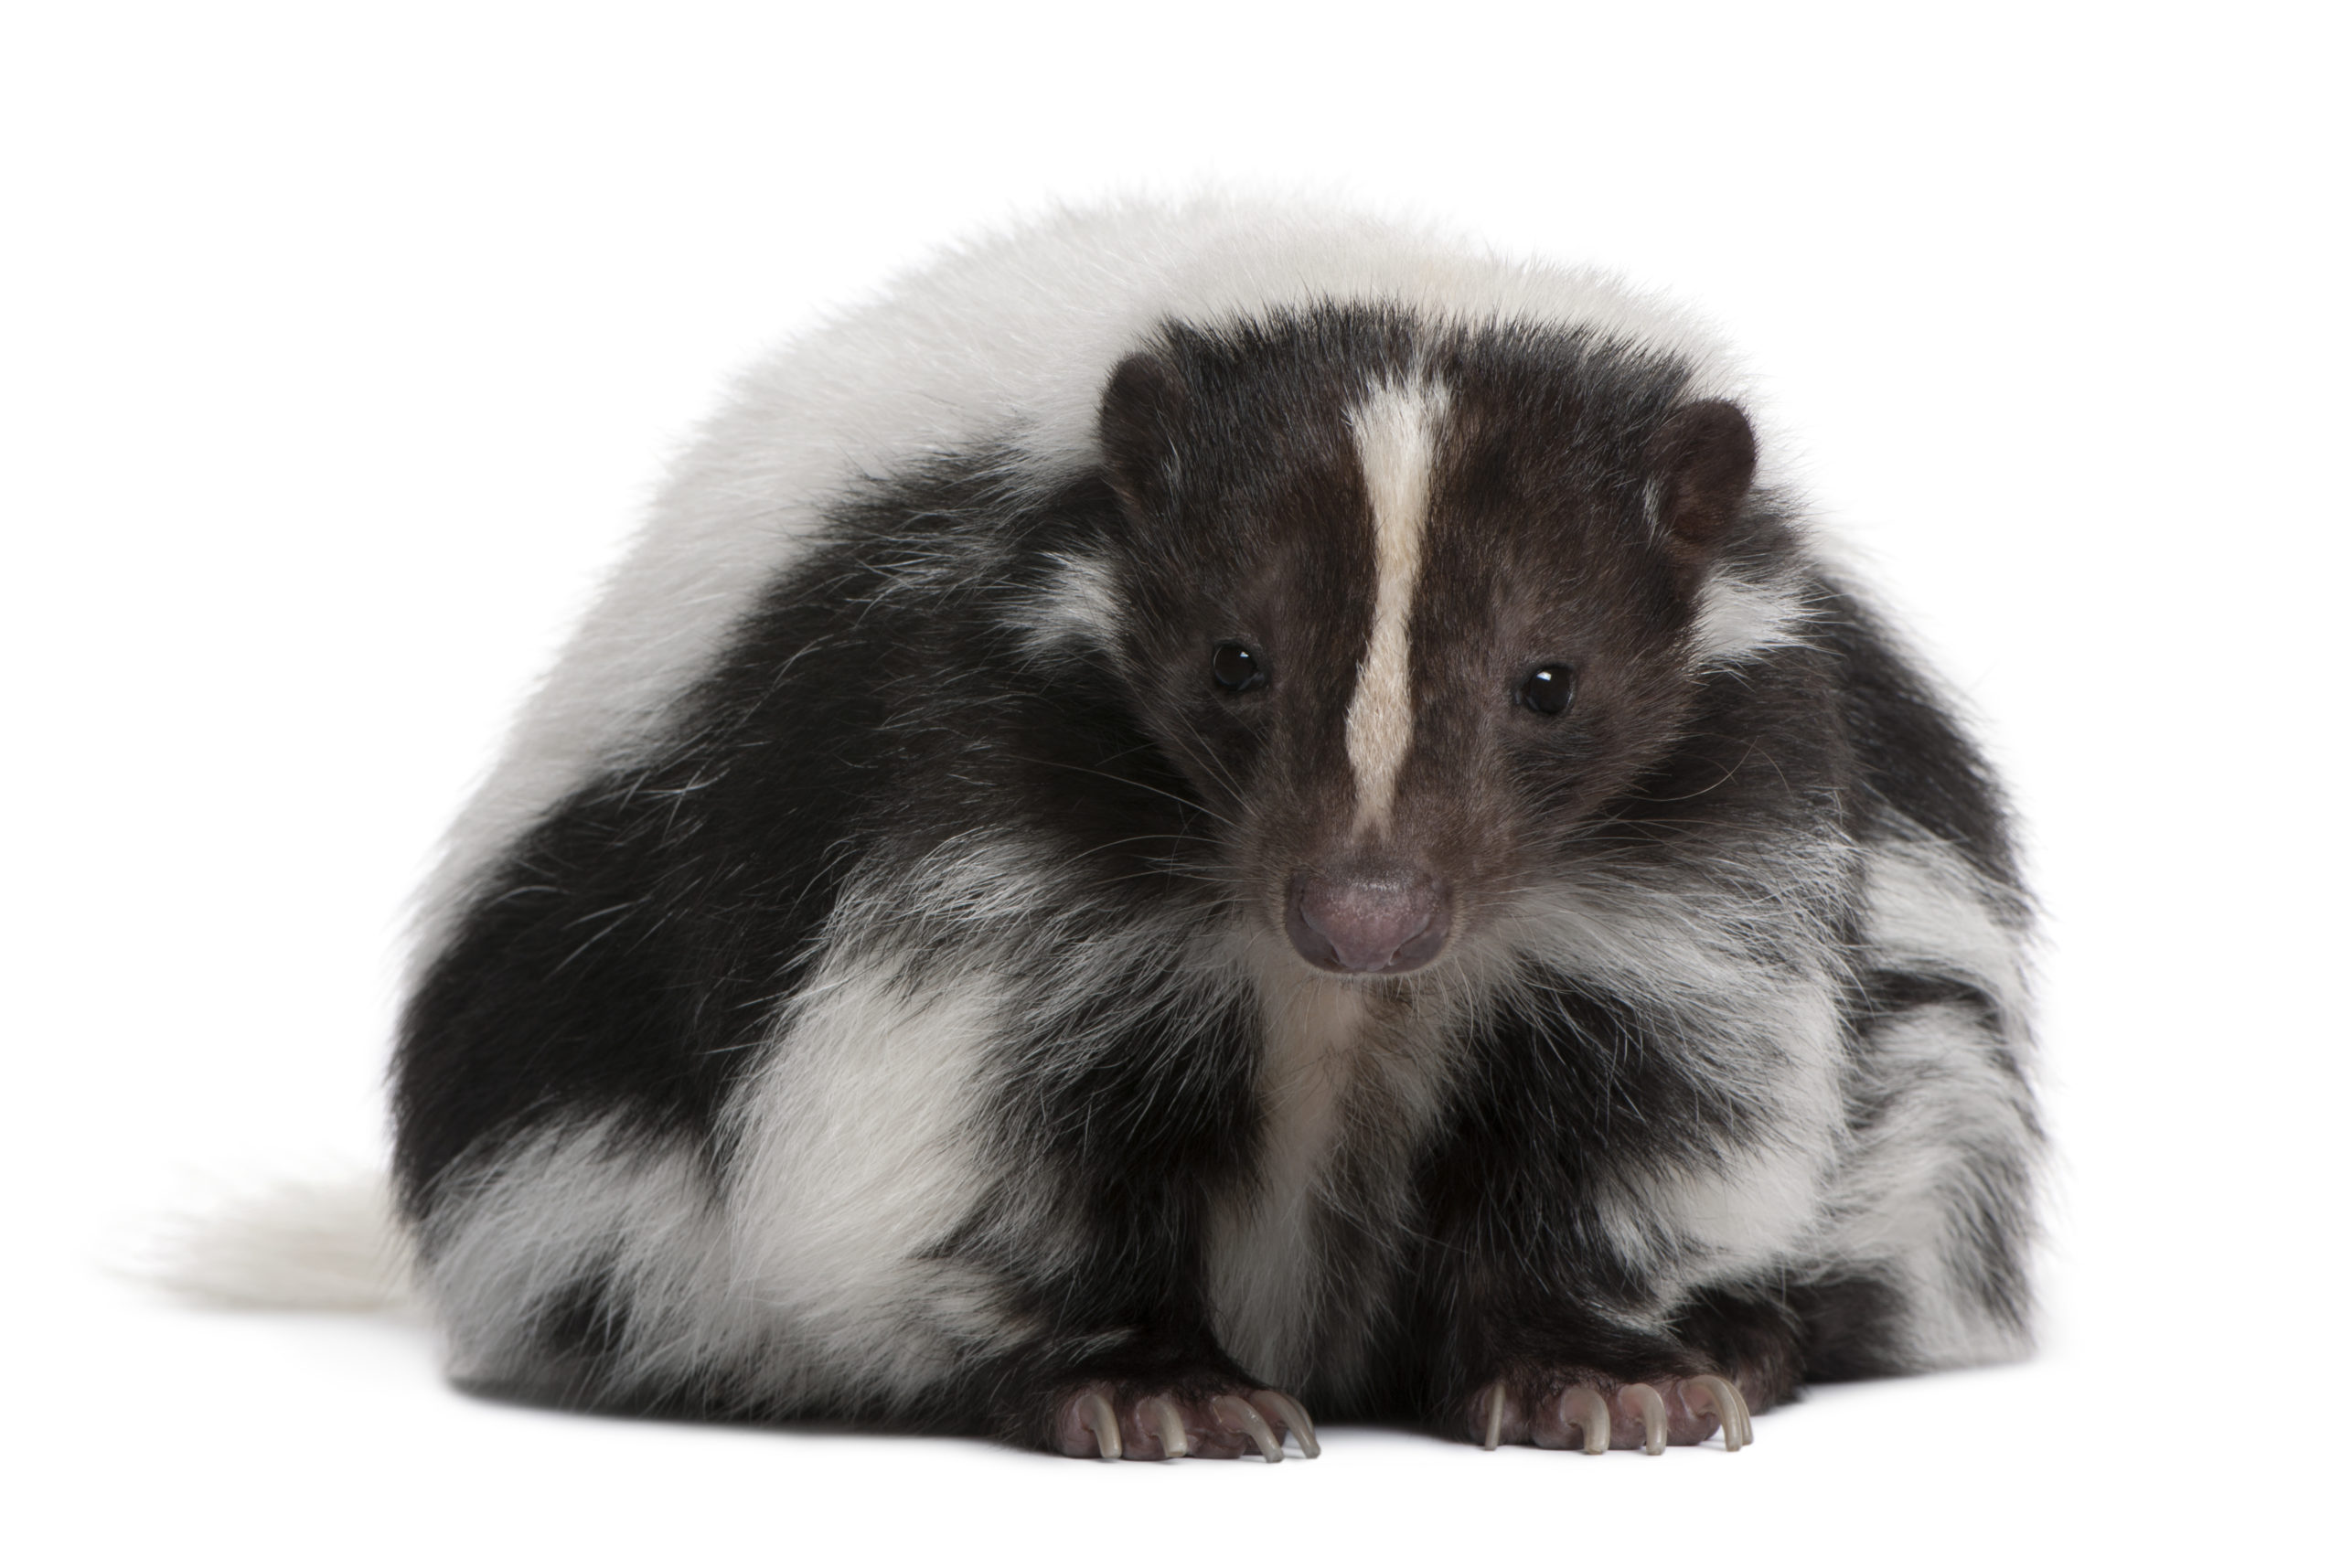 Photo of a striped black and white skunk